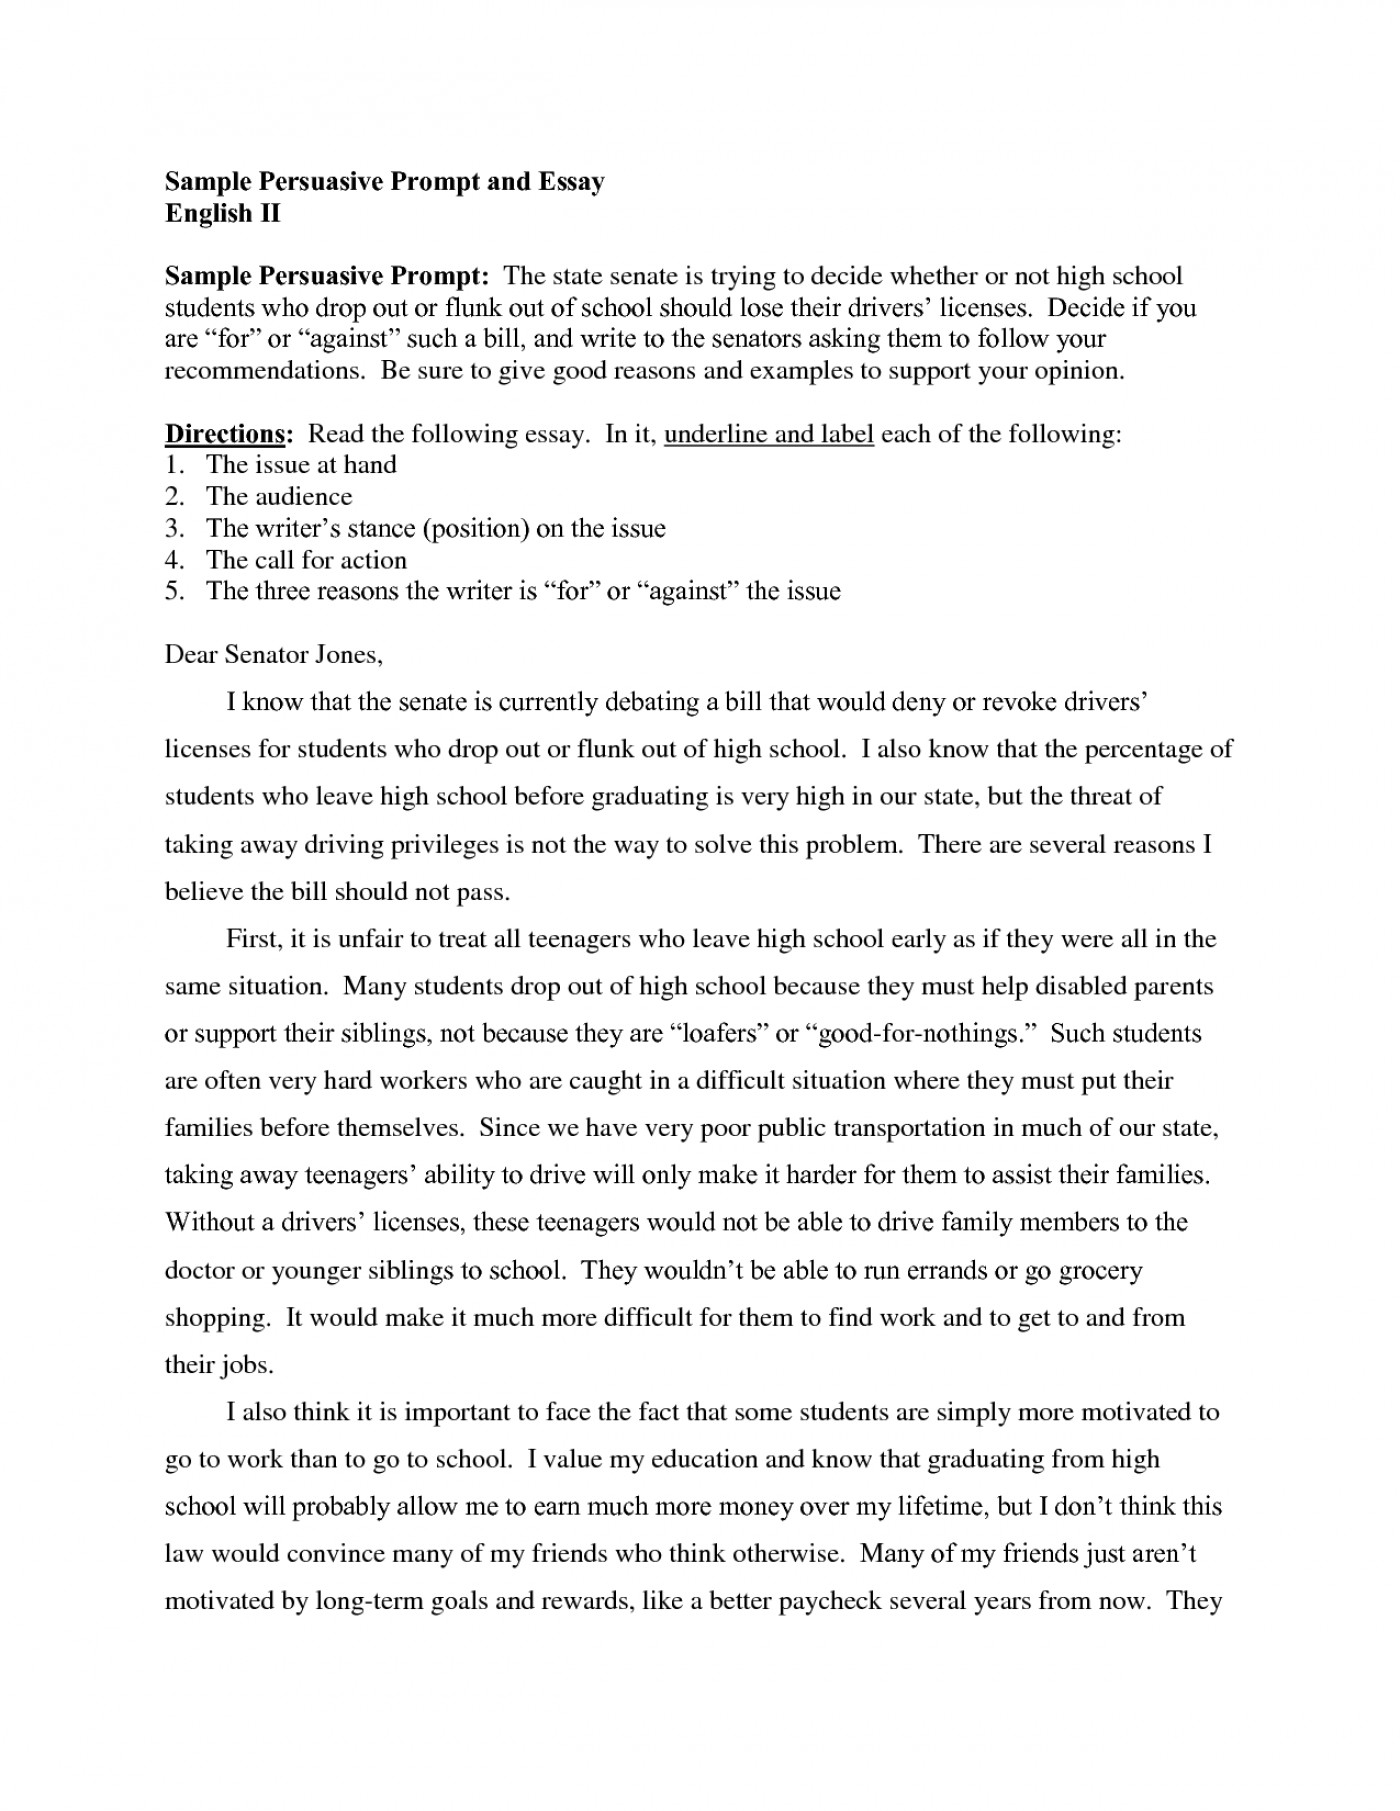 013 Research Paper Easy Topic Persuasive Essay Topics For High School Sample Ideas Highschool Students Good Prompt Funny Fun List Of Seniors Writing English Sensational Psychology Biology 1400